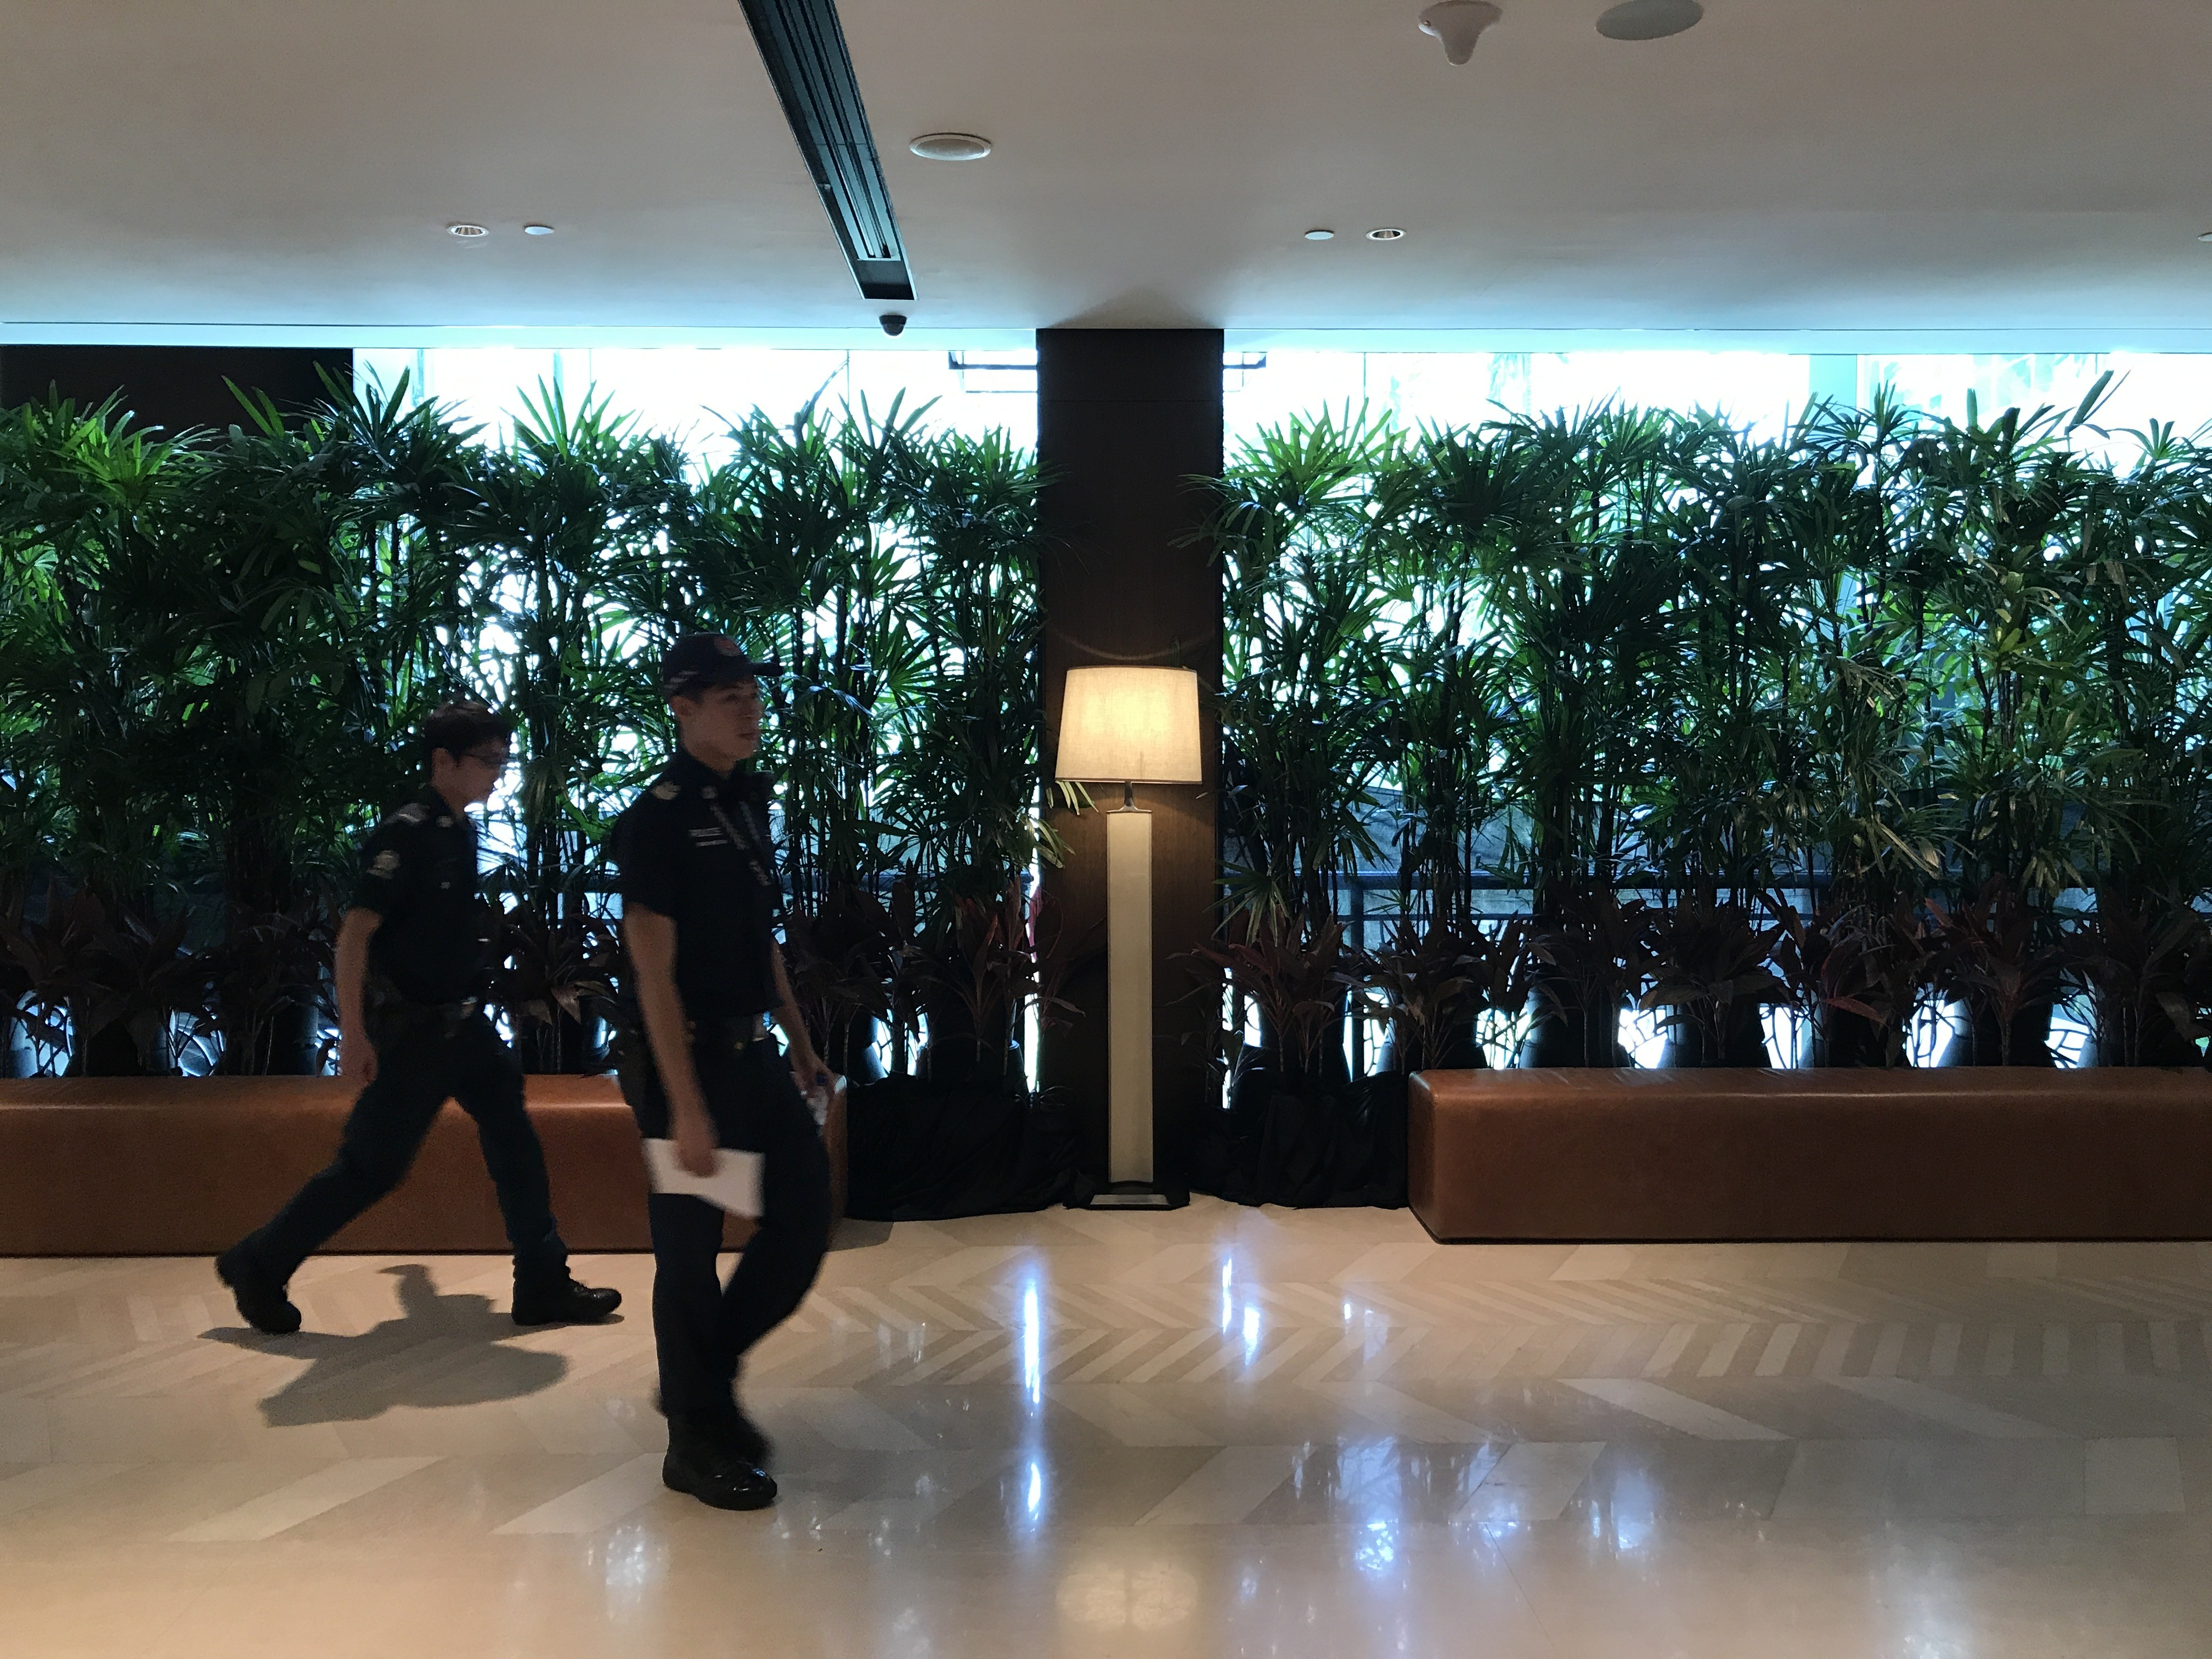 Tall plants were brought in to give officials privacy as they walked from one hotel tower to another. (Kristina Wong/Breitbart News)